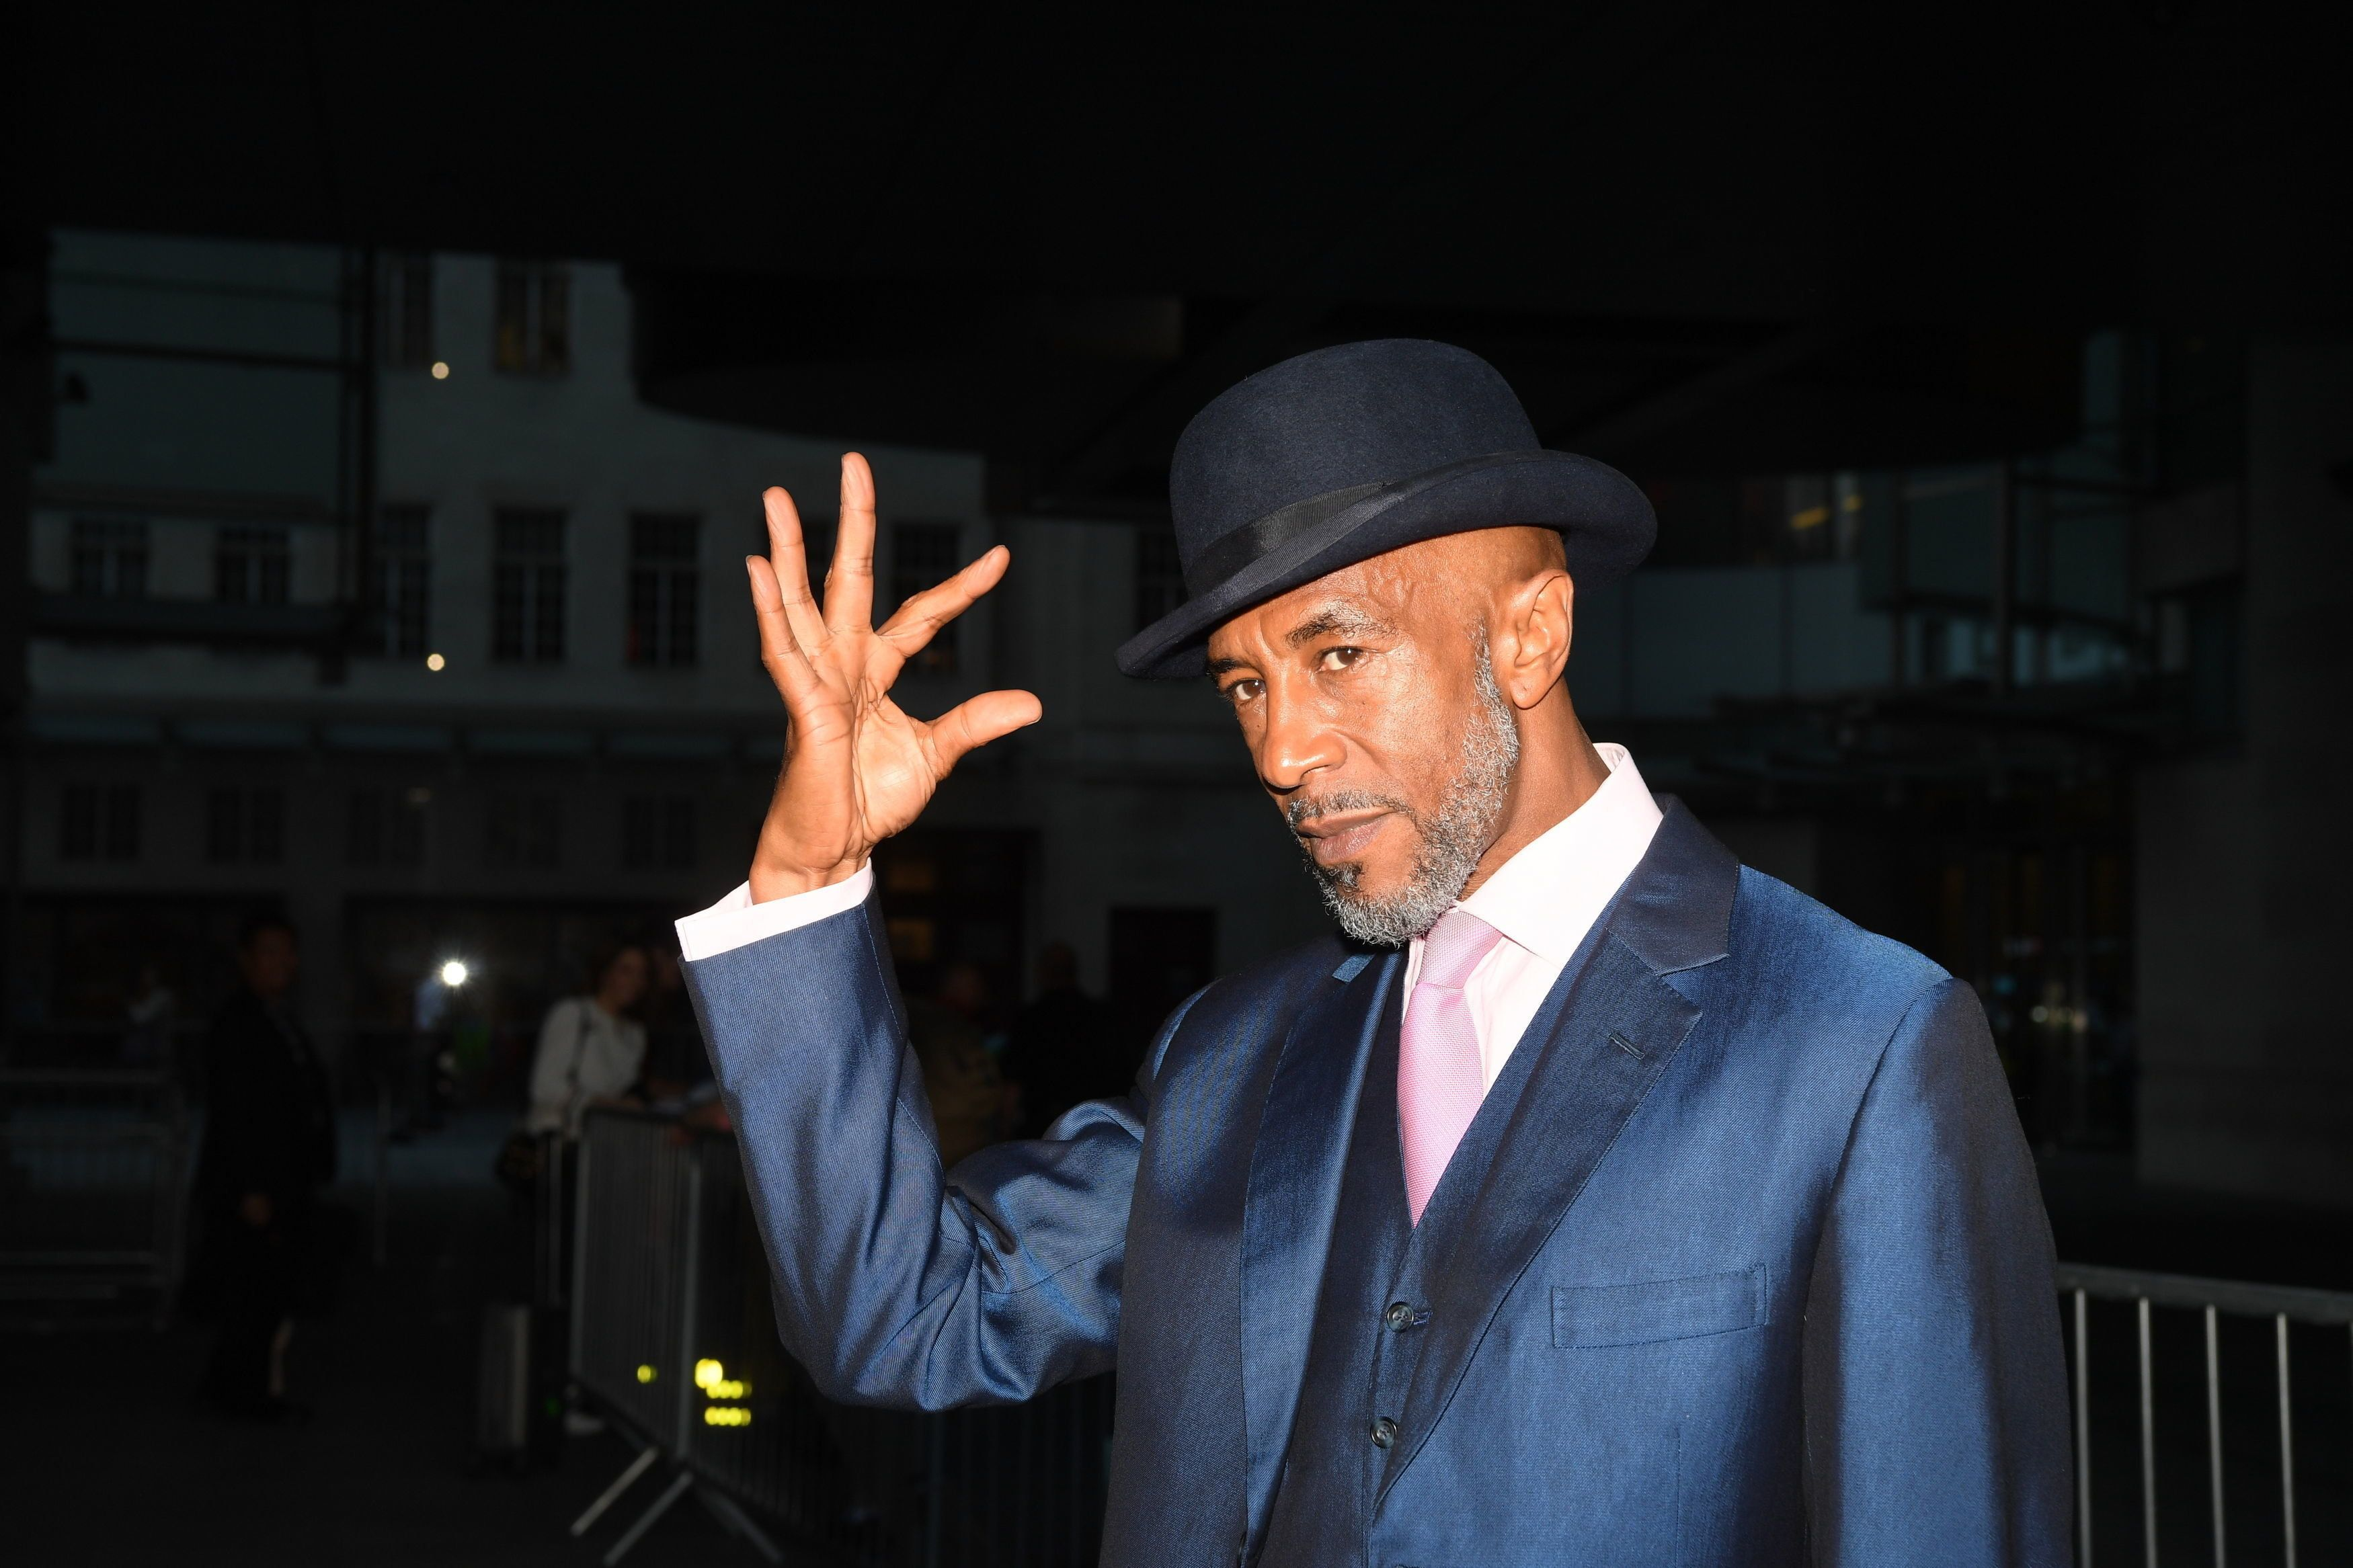 Strictly's Danny John-Jules Accused Show Of Racial Bias In Previously Sent Tweets